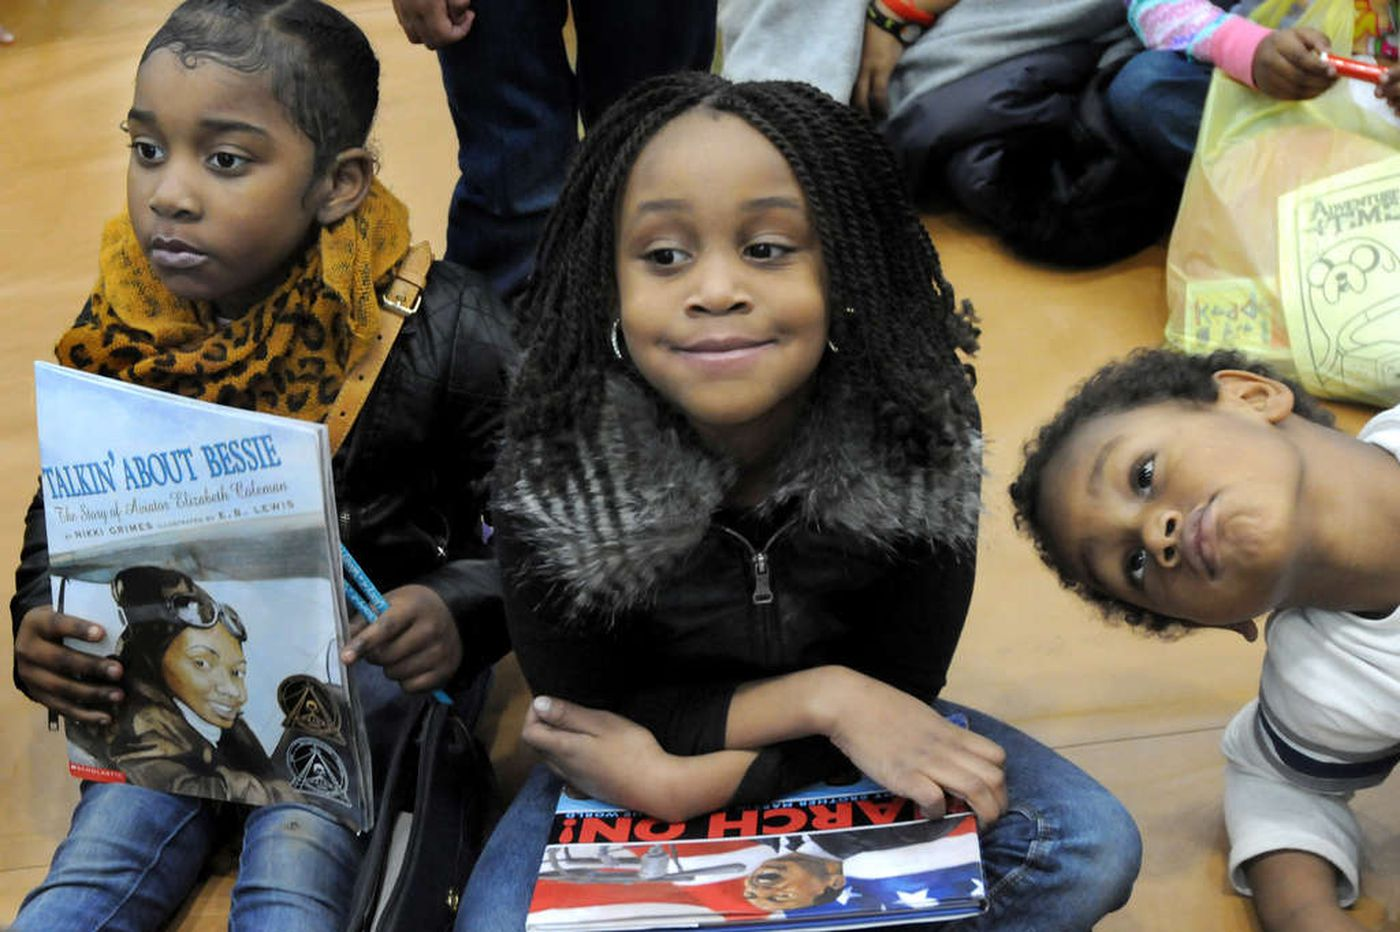 Find black children's books at this weekend's African American Children's Book Fair